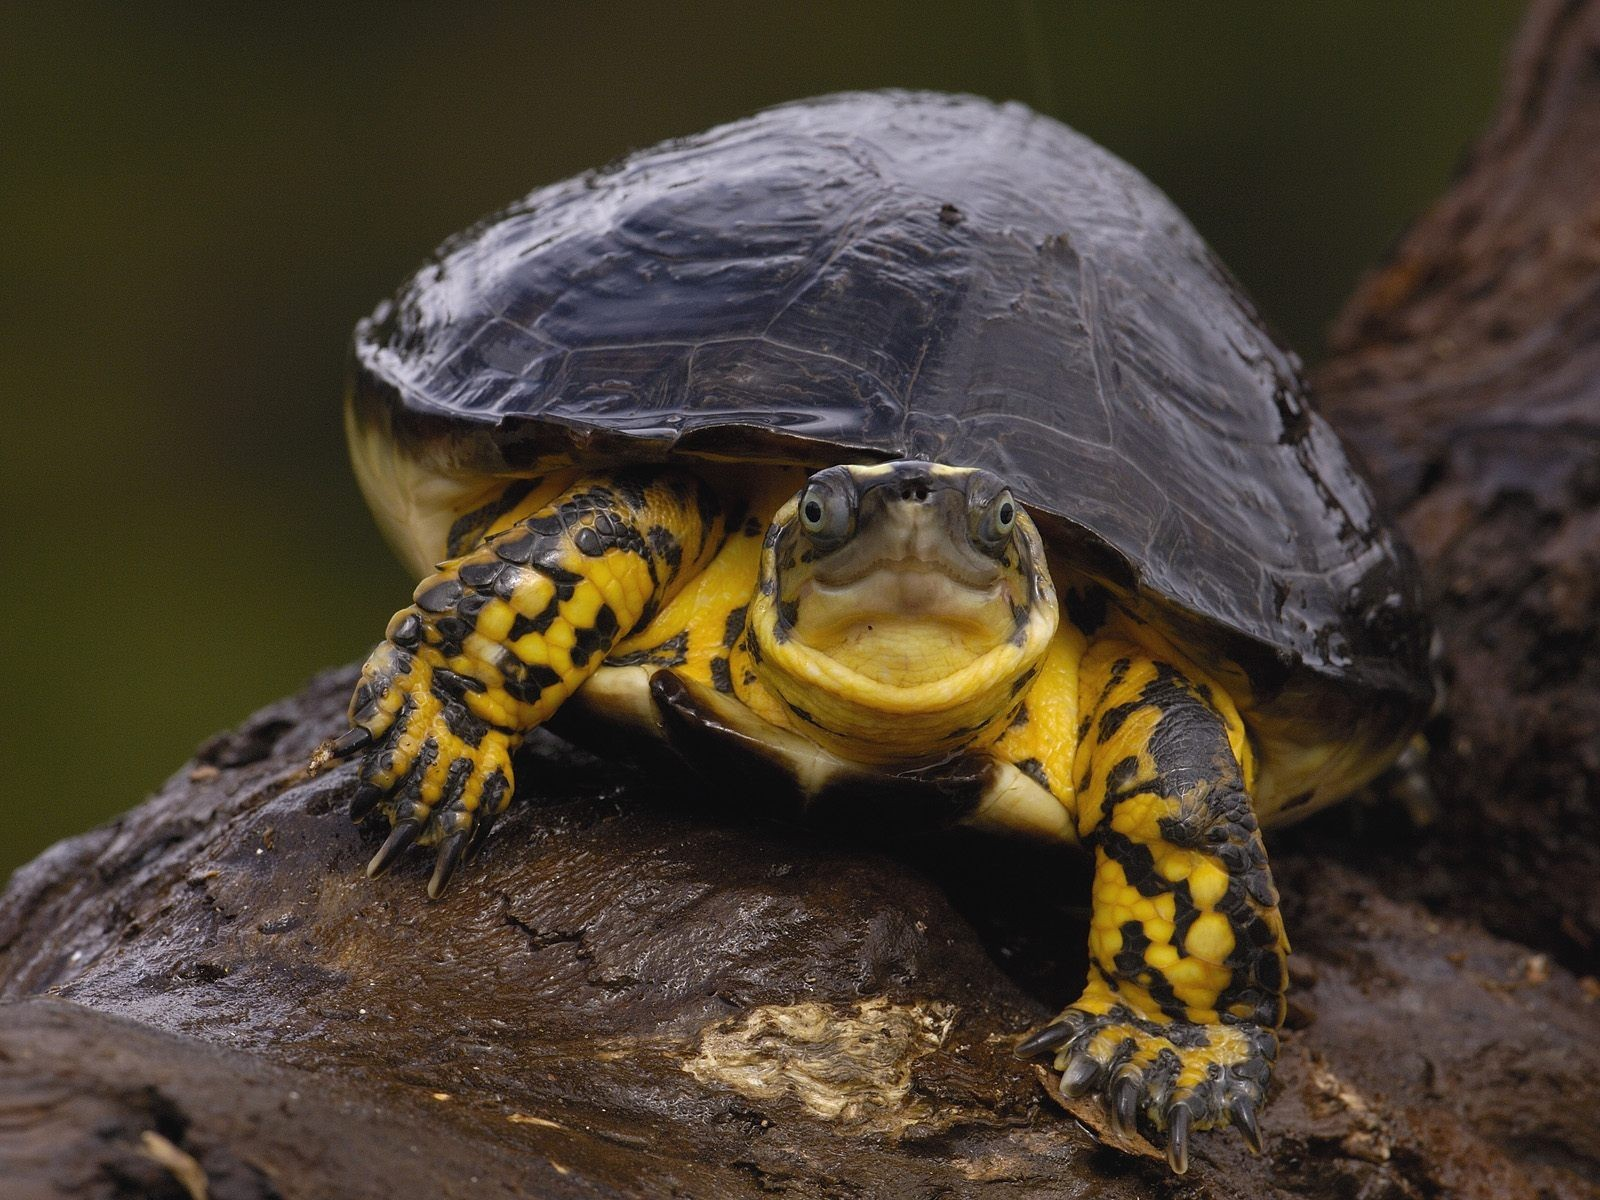 turtles Reptiles HD Wallpaper